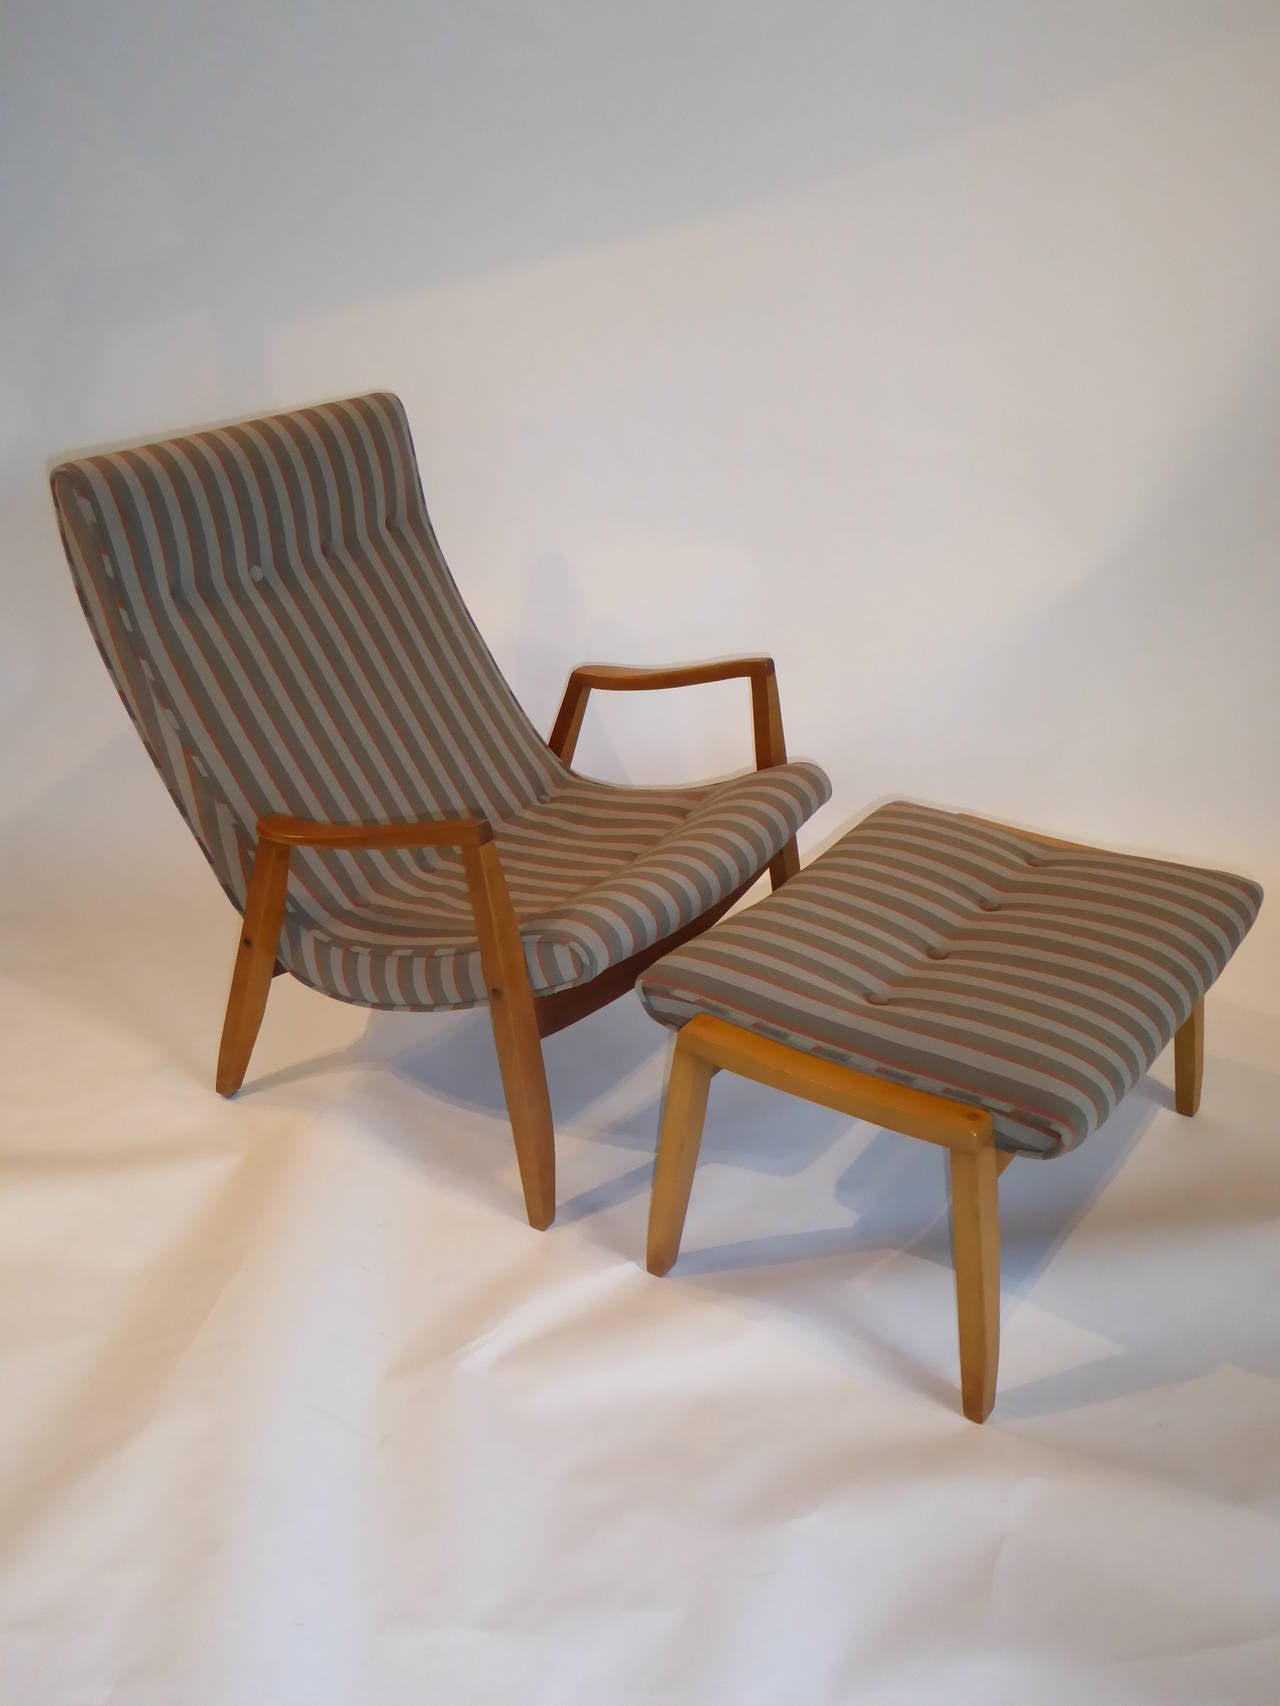 Milo Baughman Chairs 1950s Milo Baughman Scoop Lounge Chair And Ottoman At 1stdibs